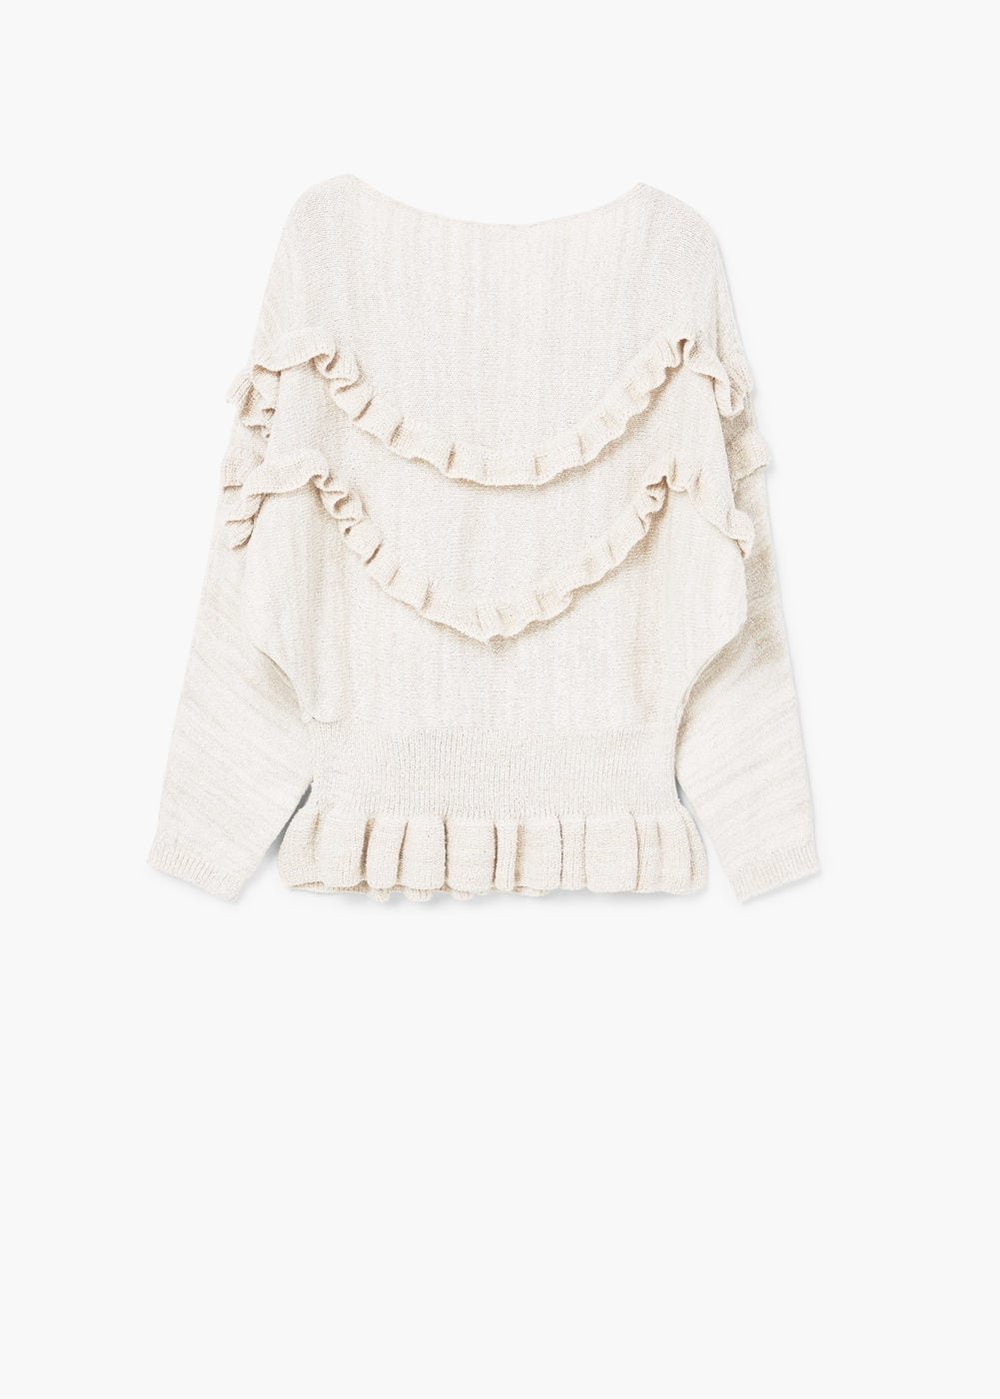 mango Ruffled sweater $69.99